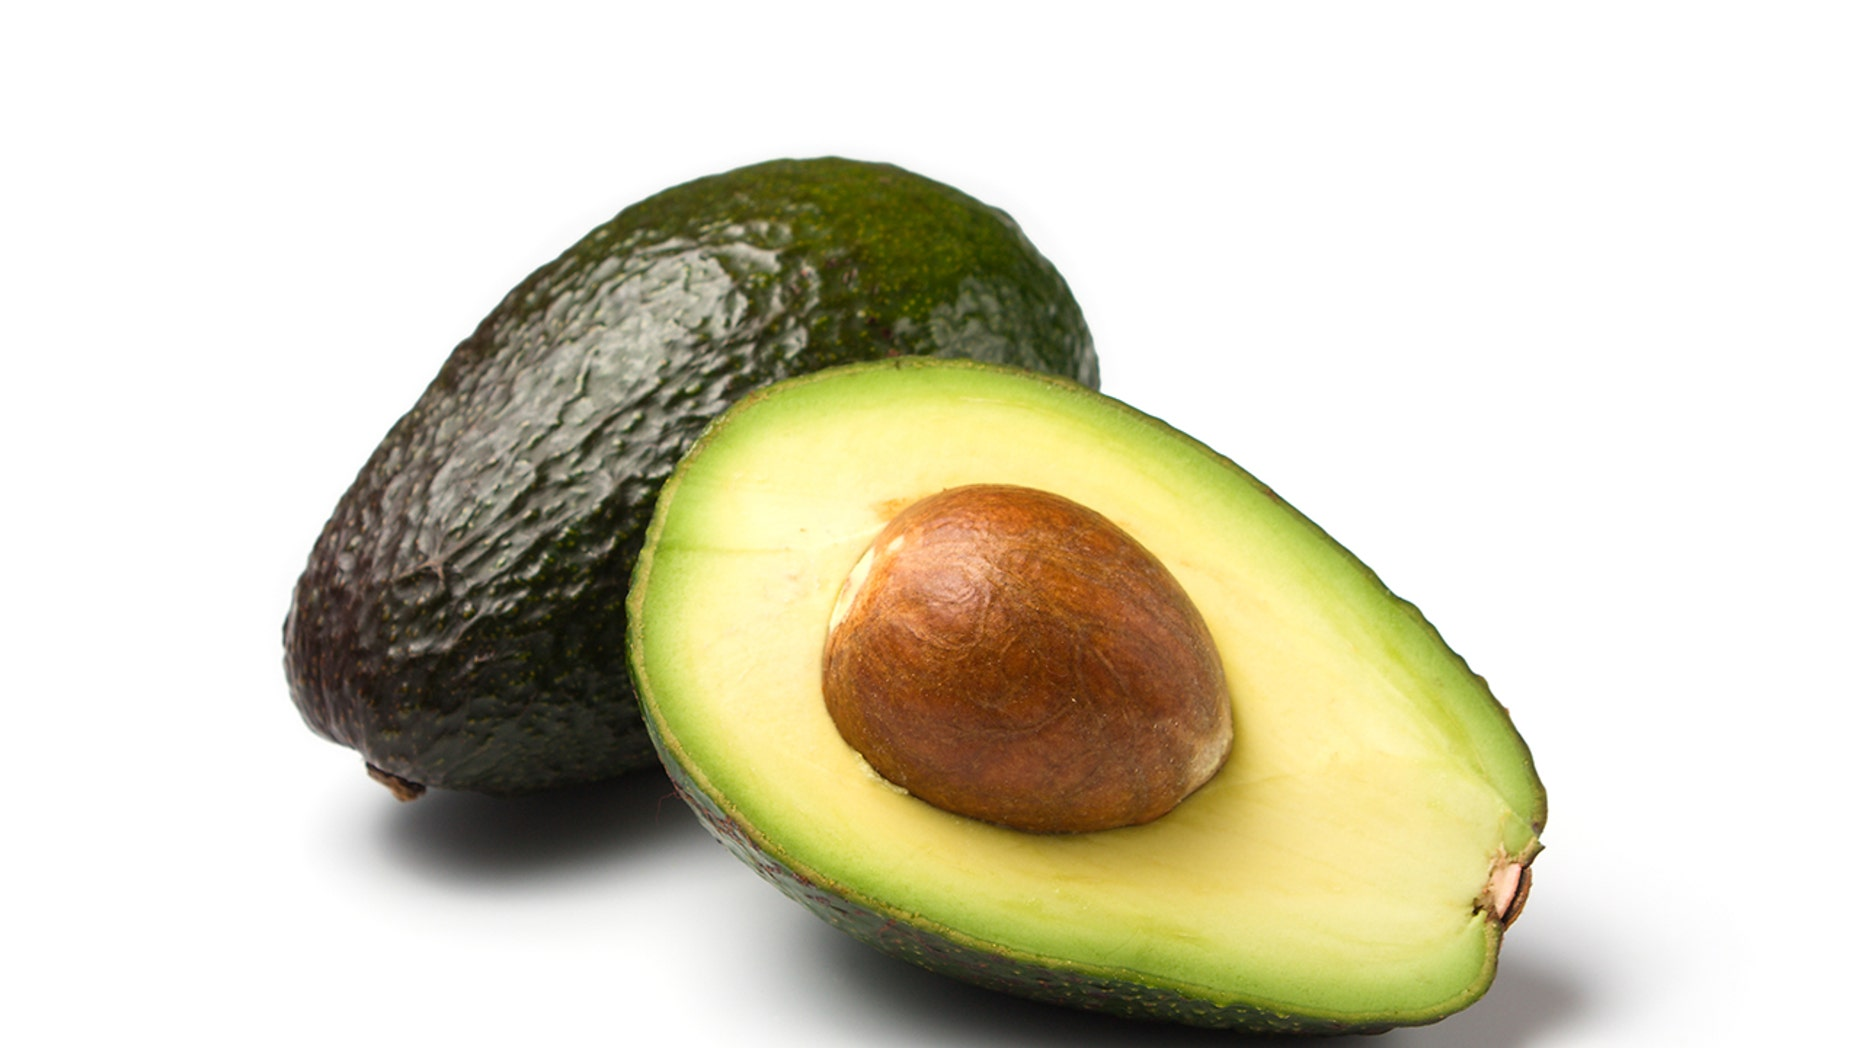 Avocados may be even healthier than previously thought.